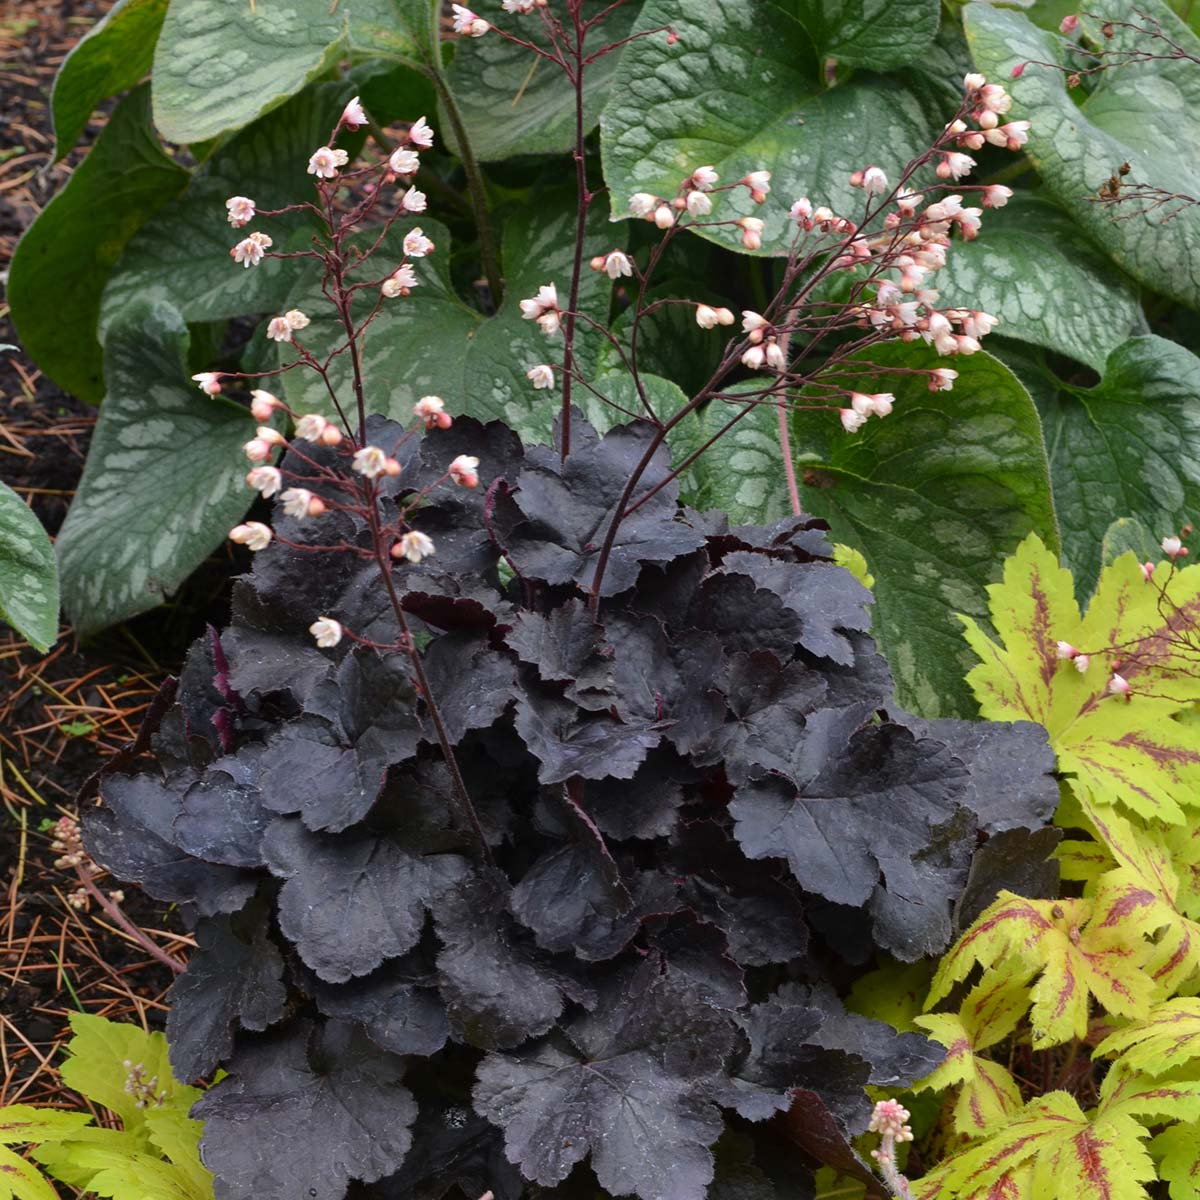 (1 Gallon Plant) Heuchera 'Little Cutie Coco' Coral Bells - Charming, Compact Dark Chocolate Foliage and Small Sprays of Coral Pink Flowers Very long blooming.